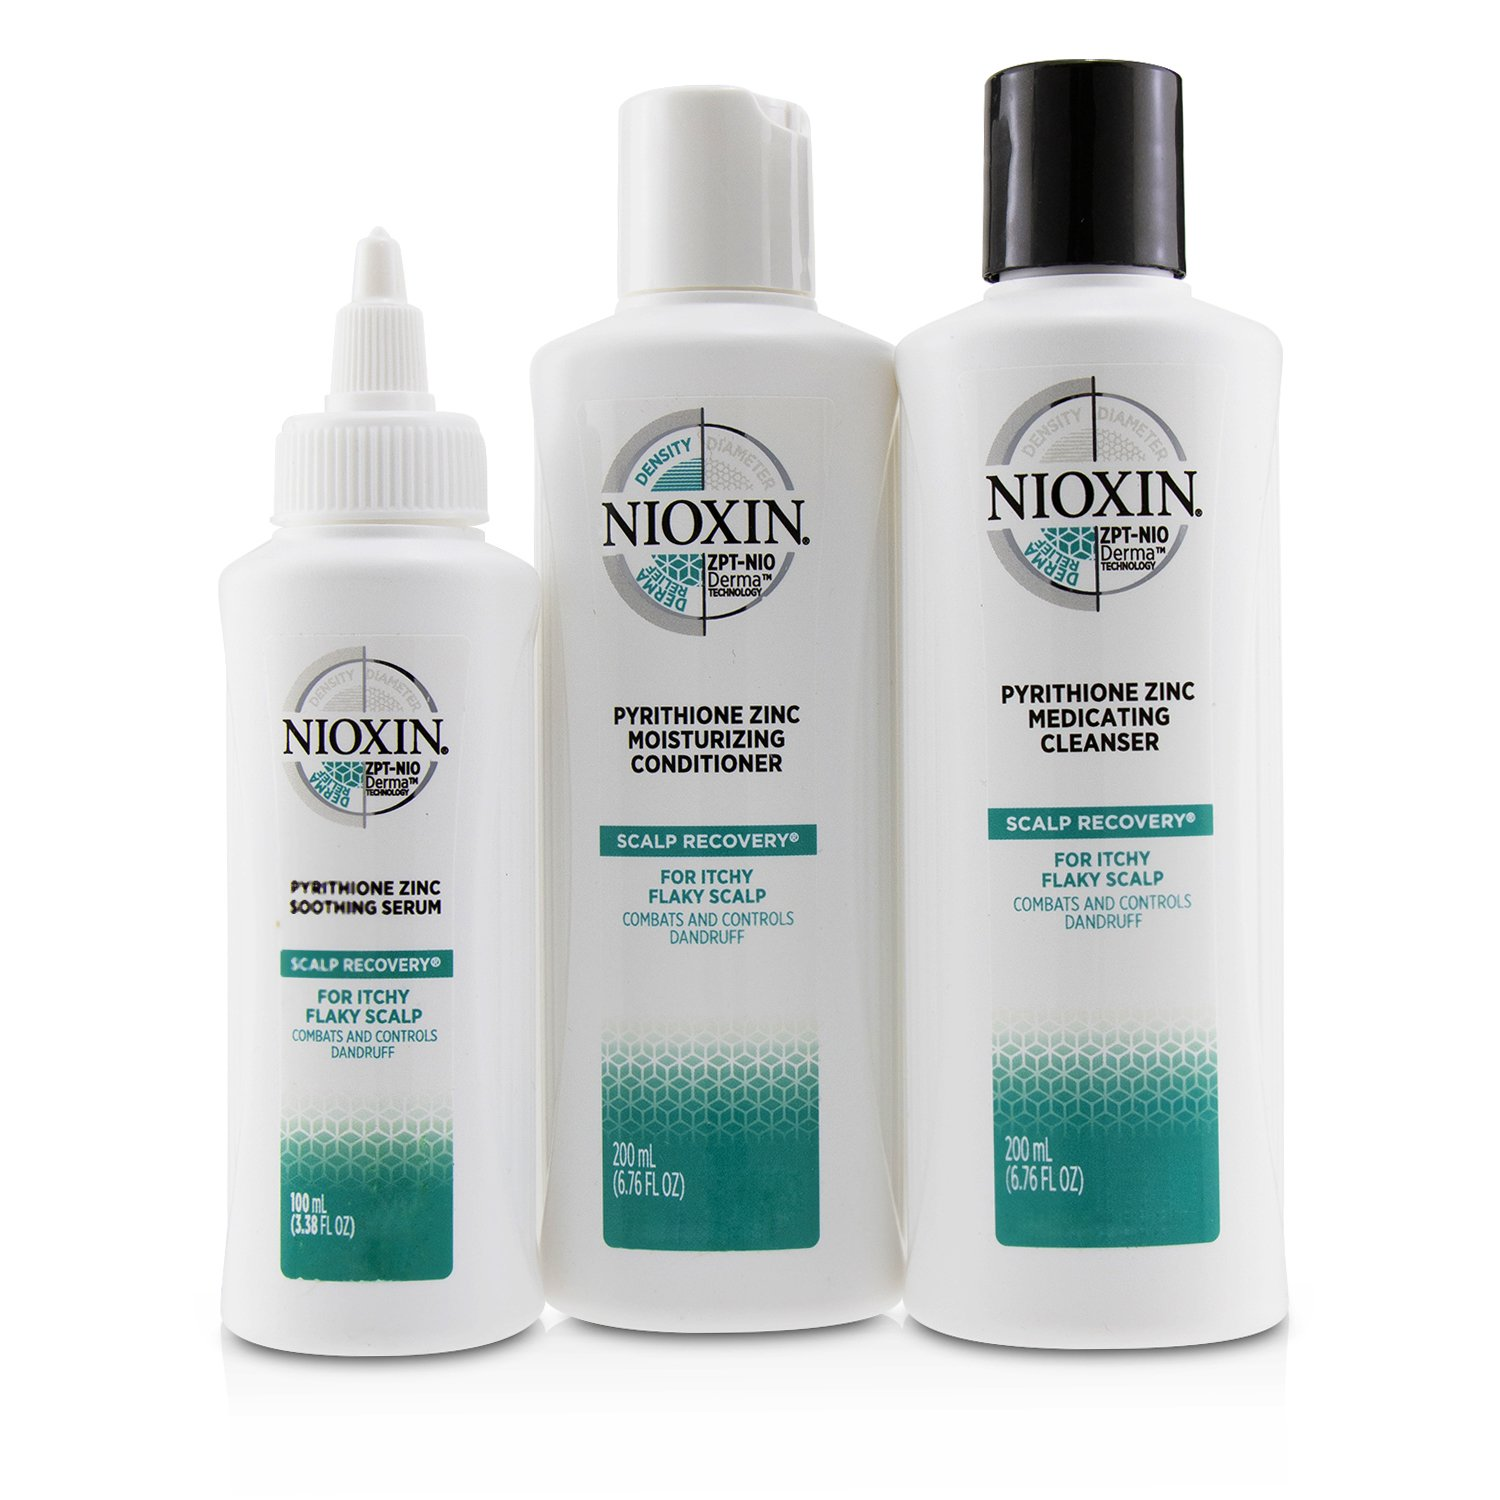 Buy NIOXIN - Scalp Recovery Kit - For Itchy Flaky Scalp 3pcs Singapore